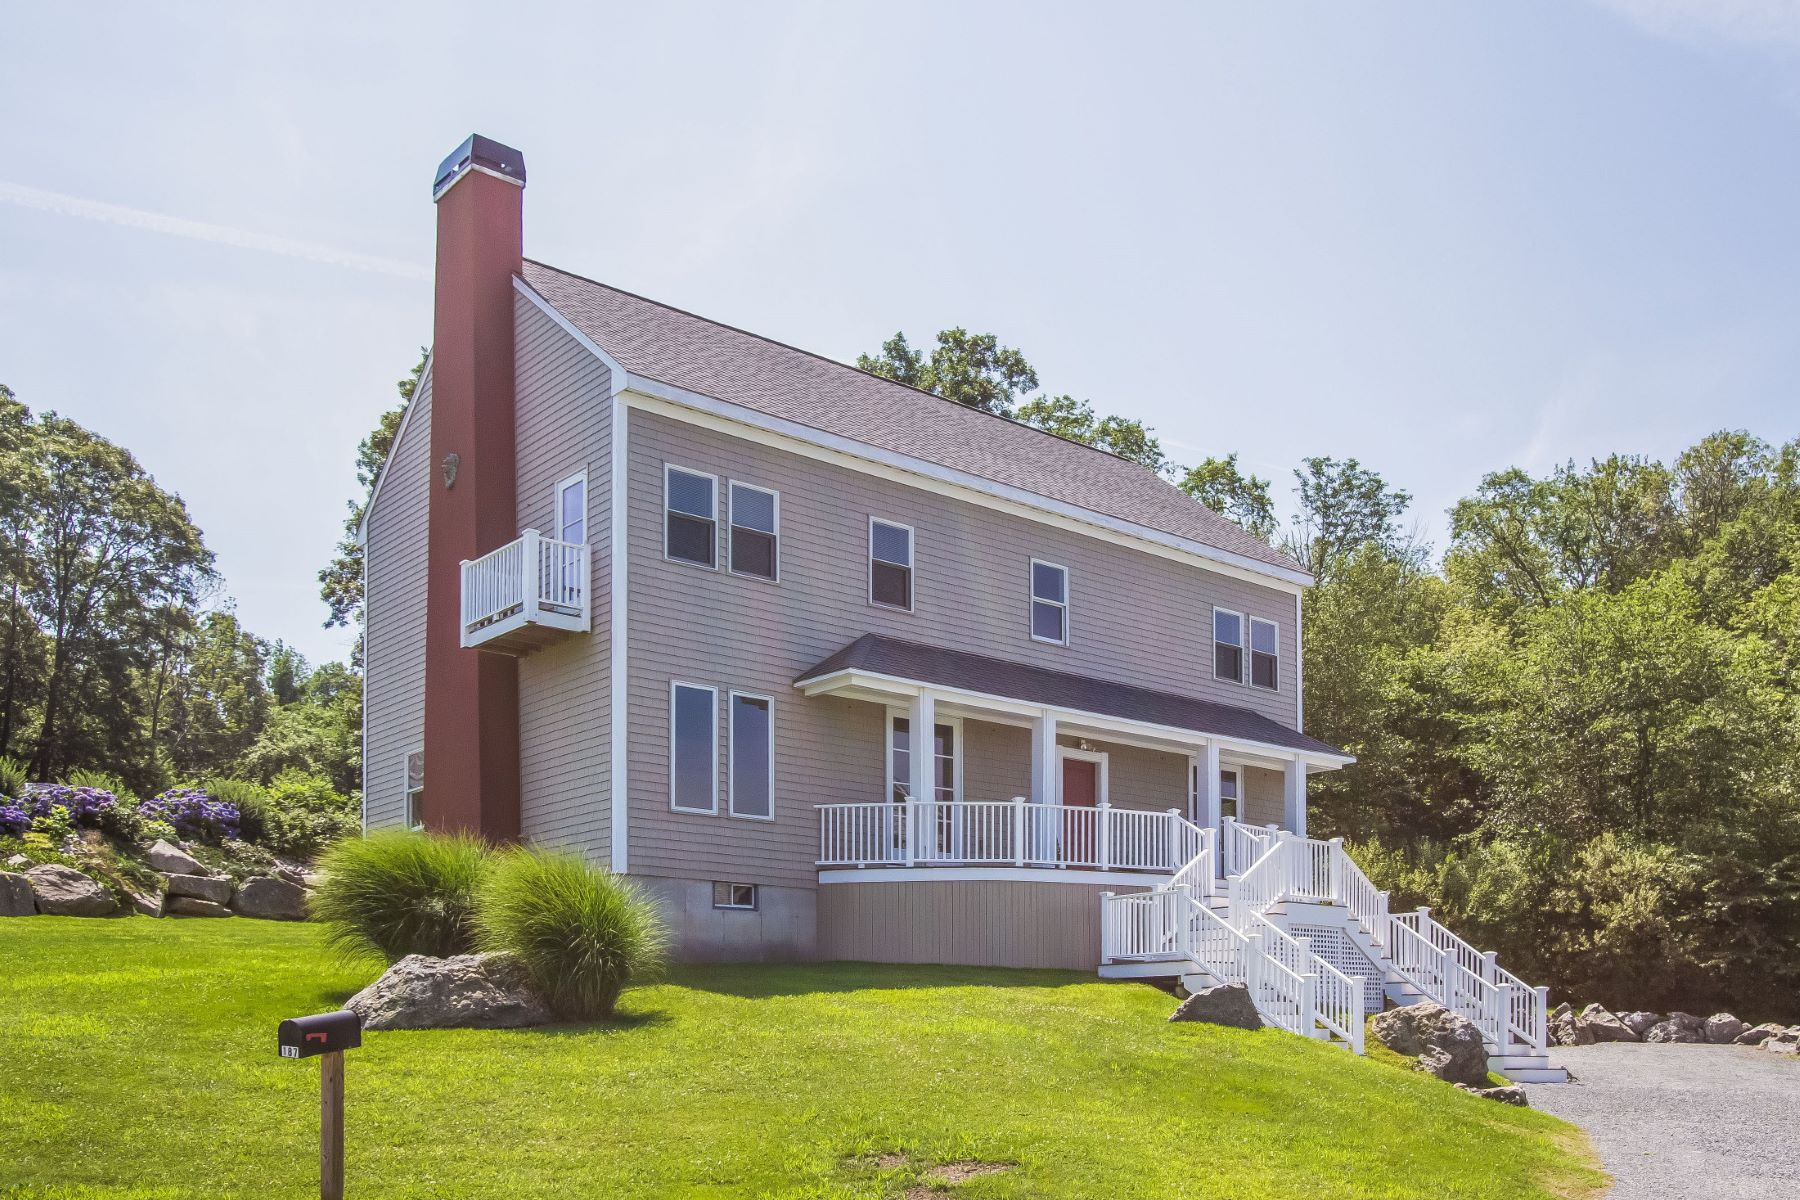 Casa Unifamiliar por un Venta en Splendid Bay Views 187 Horizon Drive Tiverton, Rhode Island 02878 Estados Unidos